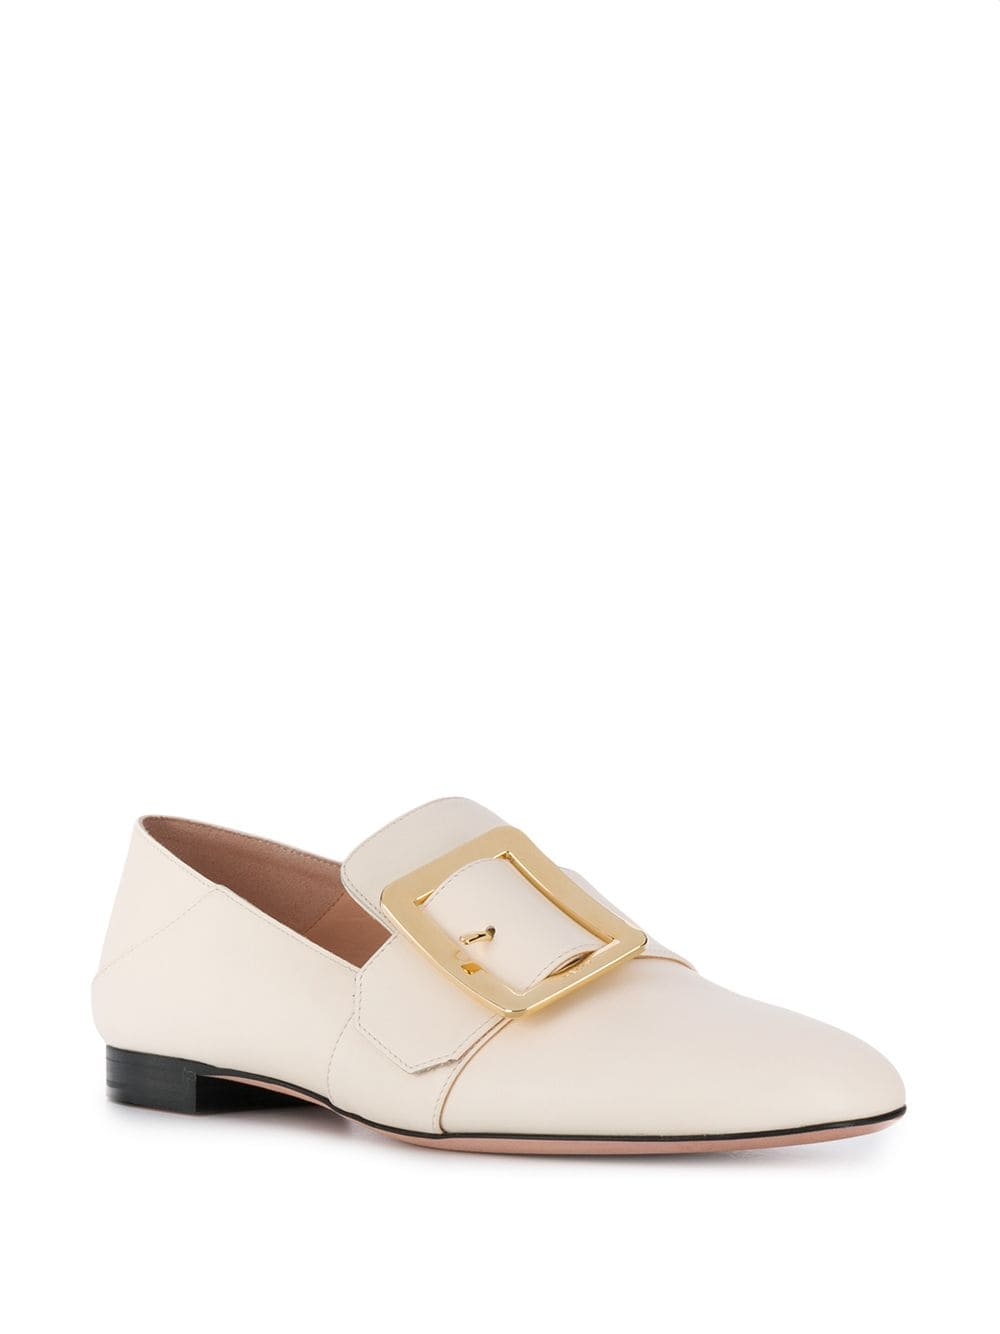 Picture of Bally | Janelle Buckle Detail Loafers